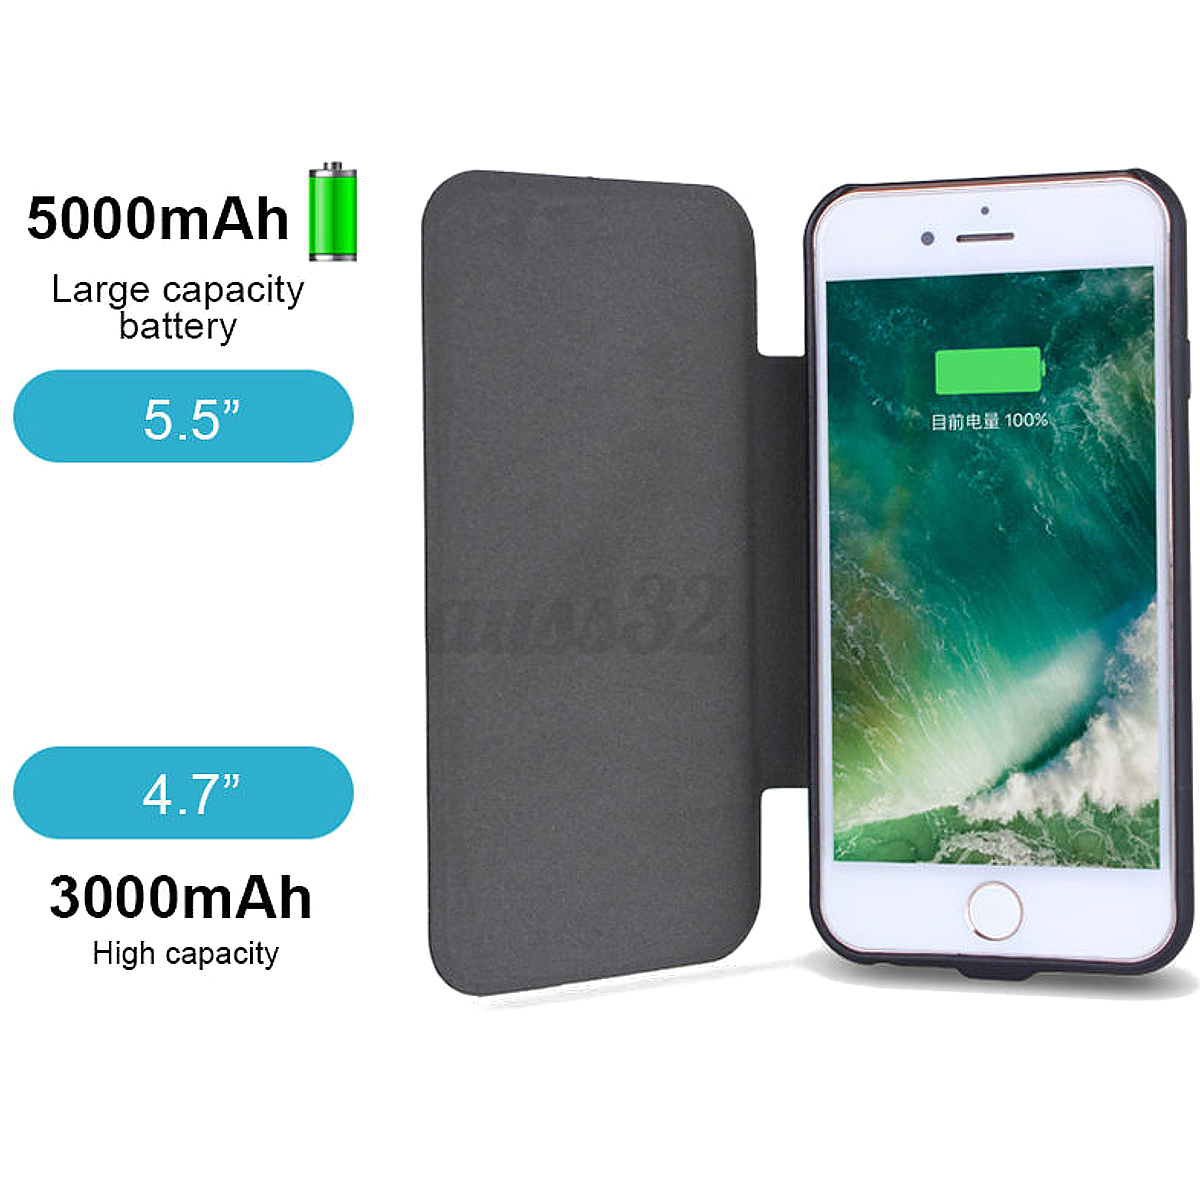 outlet store 01d78 0c24c Details about External Solar Power Battery Charger Case Cover Power Bank  For Phone 6 7 7 1